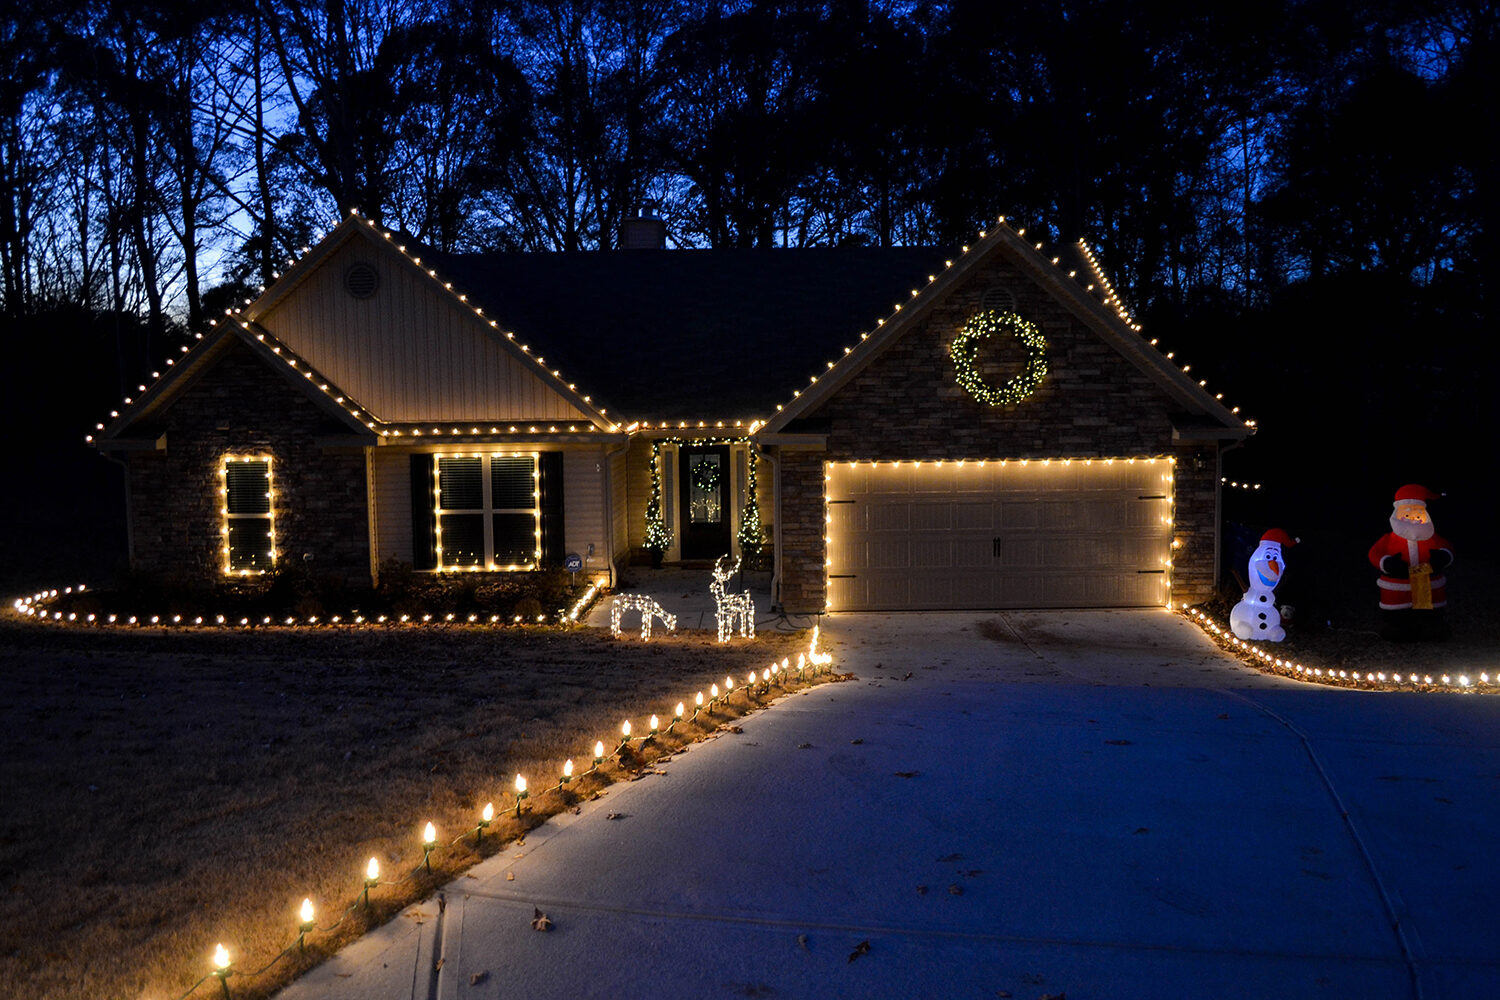 hang christmas lights across the roof and down the driveway - Christmas Light Home Decorating Ideas